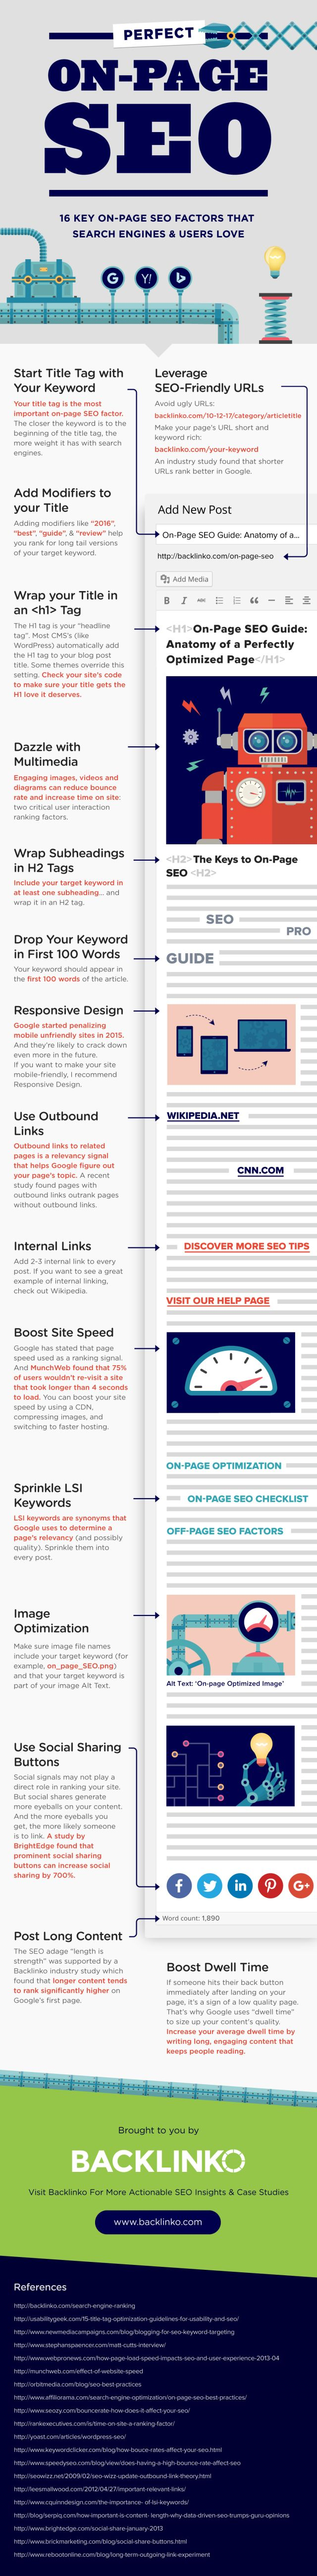 6 Best Free Online Backlink Checker Tools Or Back Link Watch Con